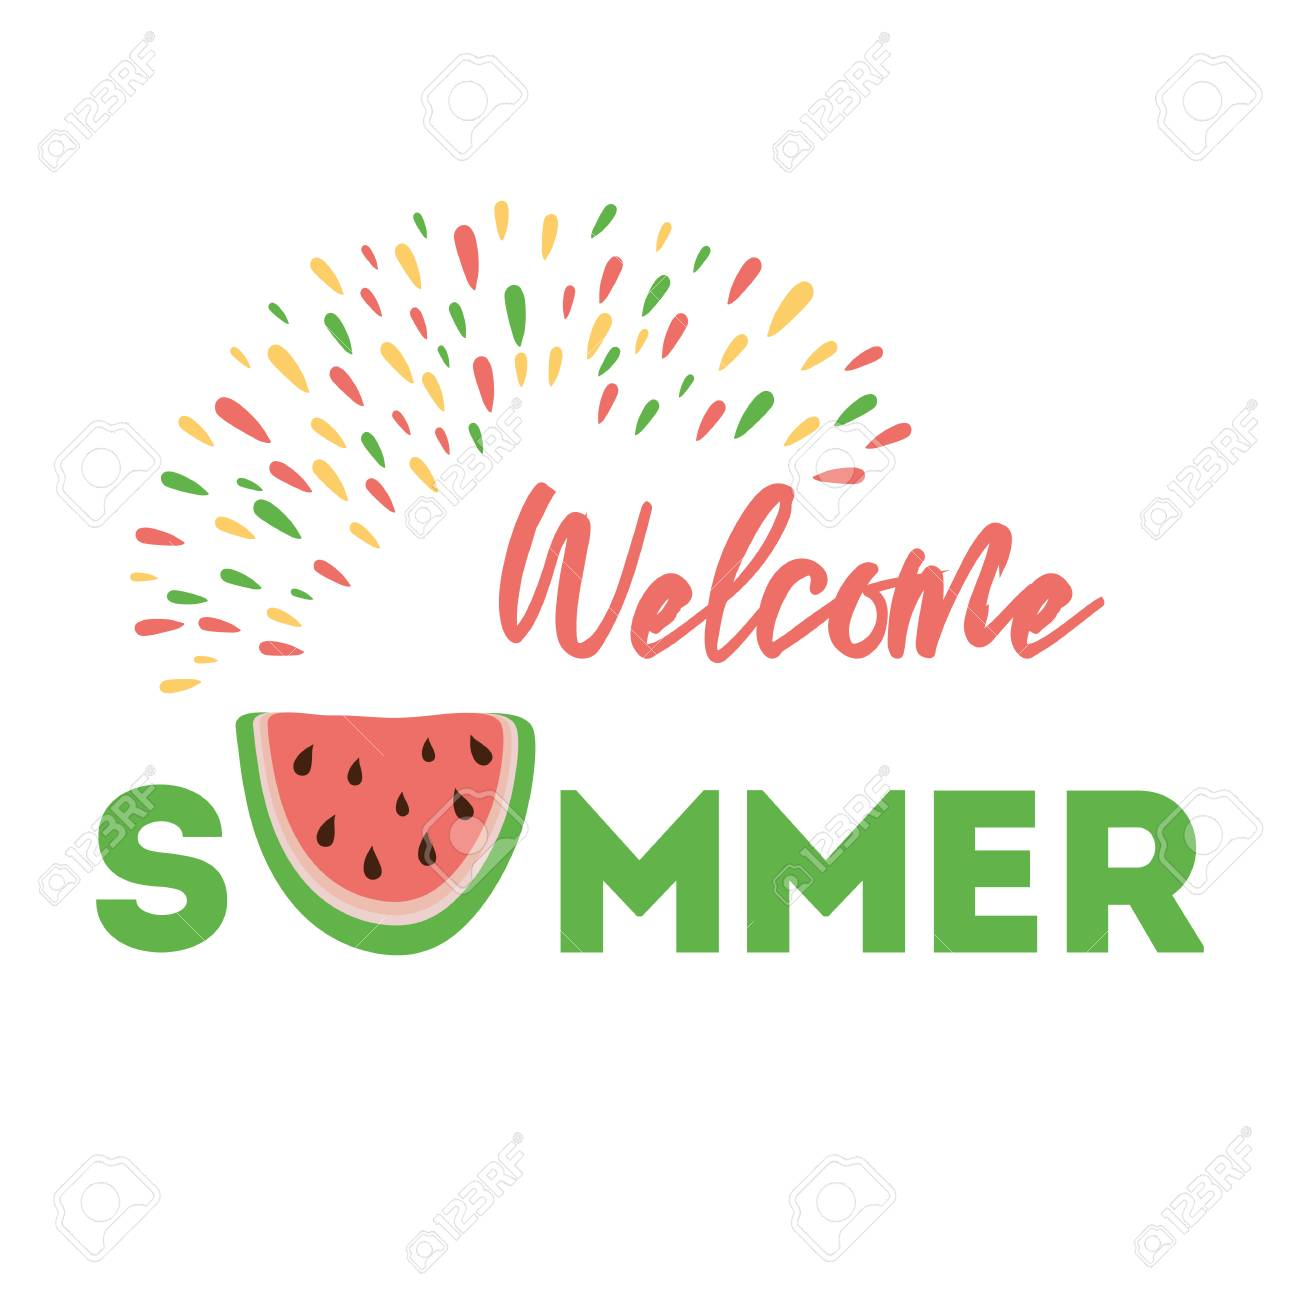 Clipart summer sign. Welcome on the background